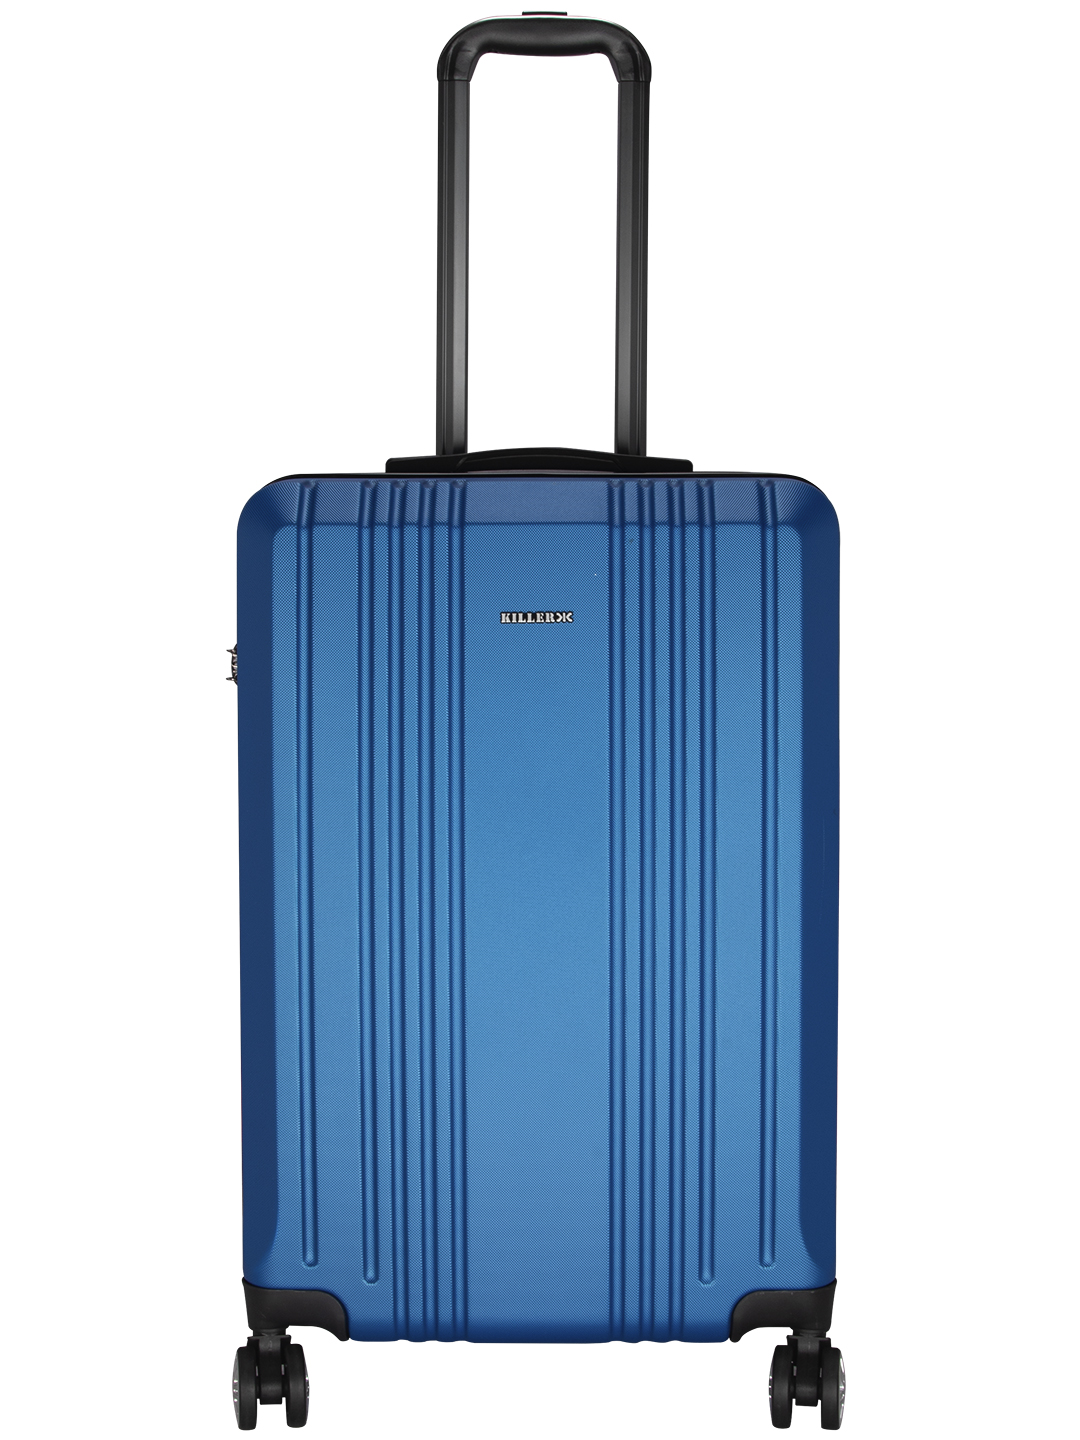 Hilton Polycarbonate (24 inches) Royal Blue Trolley Suitcase